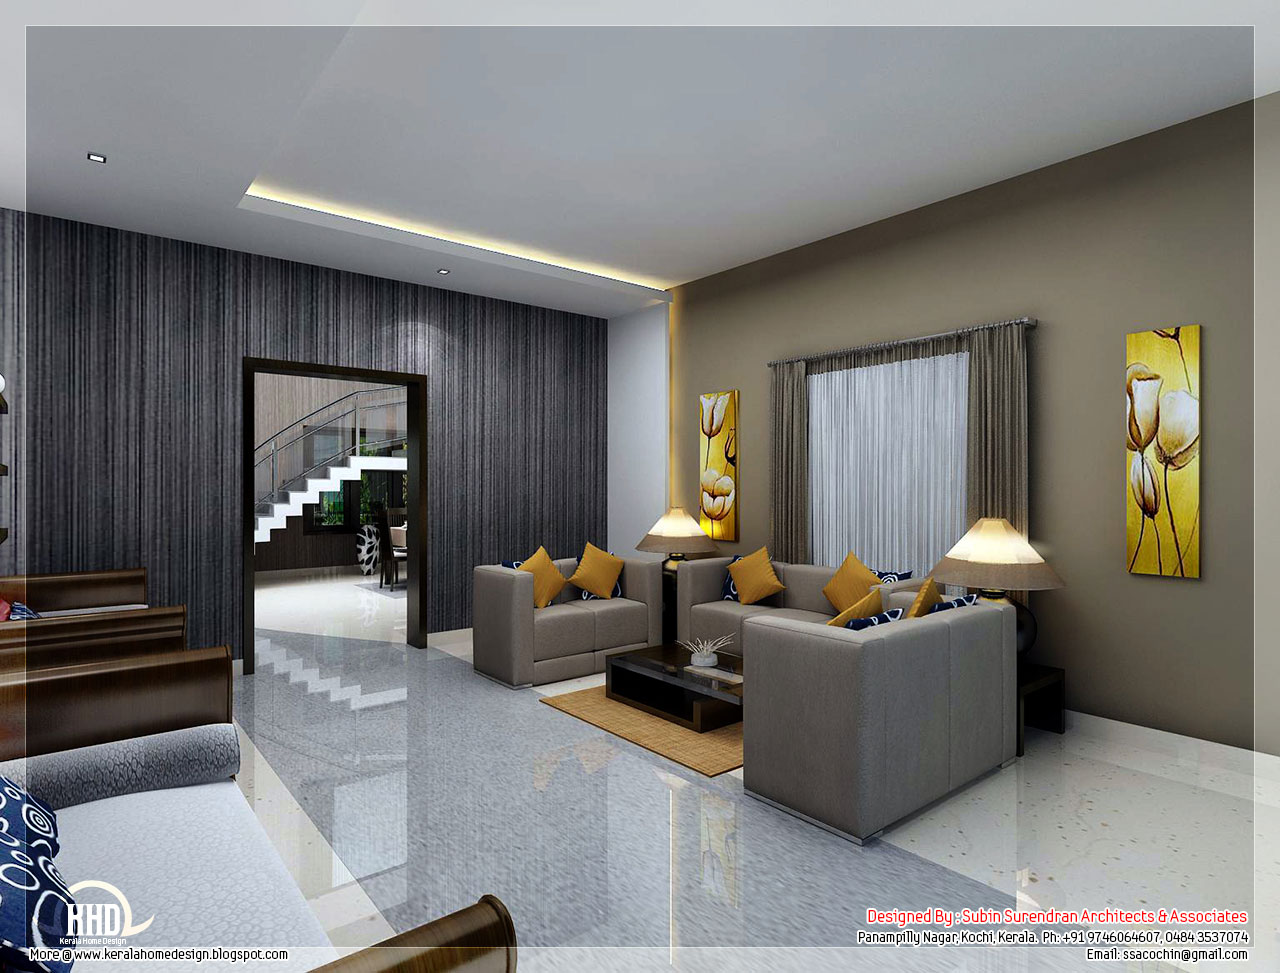 awesome black living room 3d model | Awesome 3D interior renderings | Kerala House Design